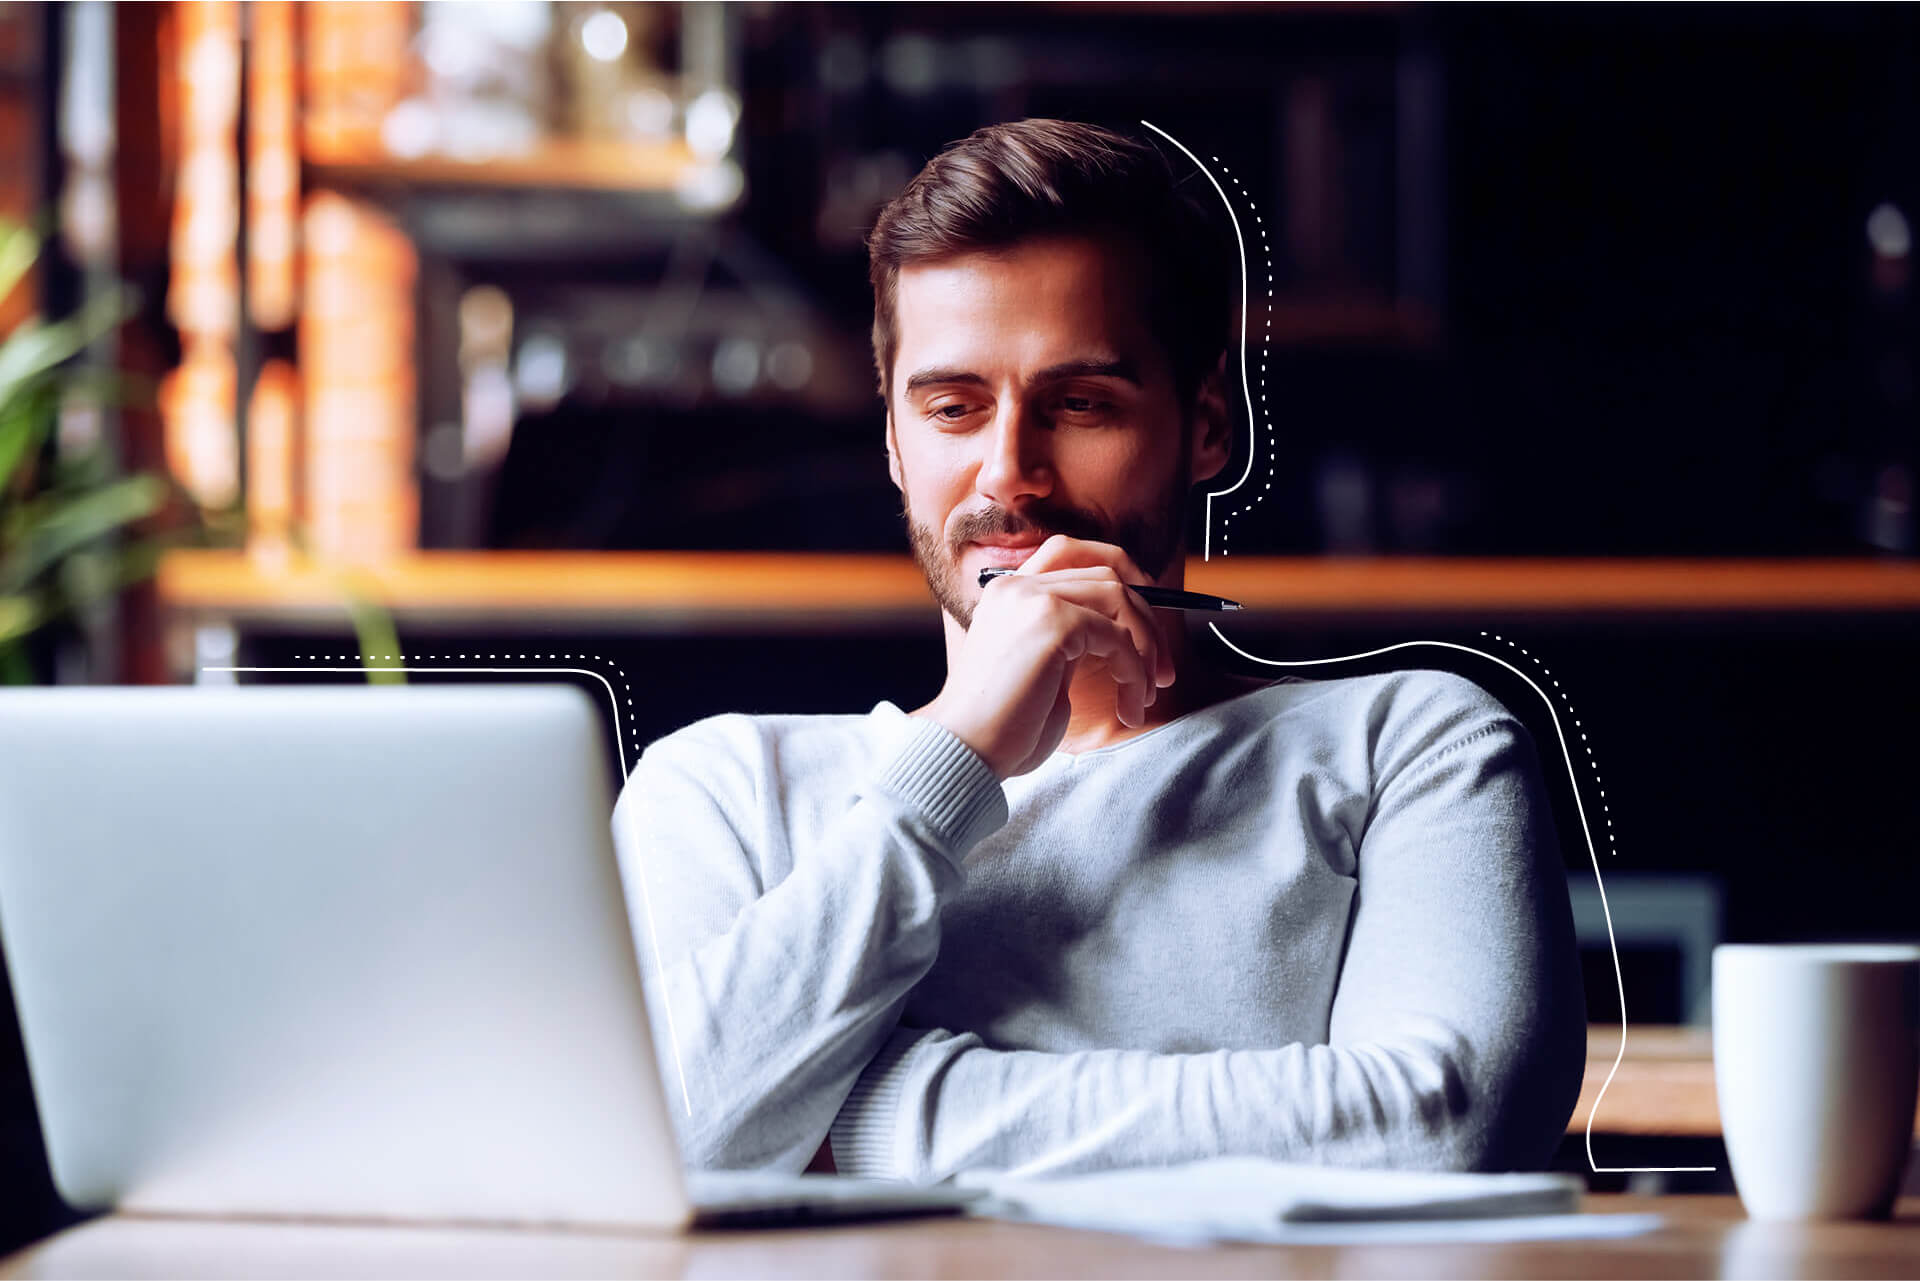 Man sitting thoughtfully in front of laptop | eggheads.net